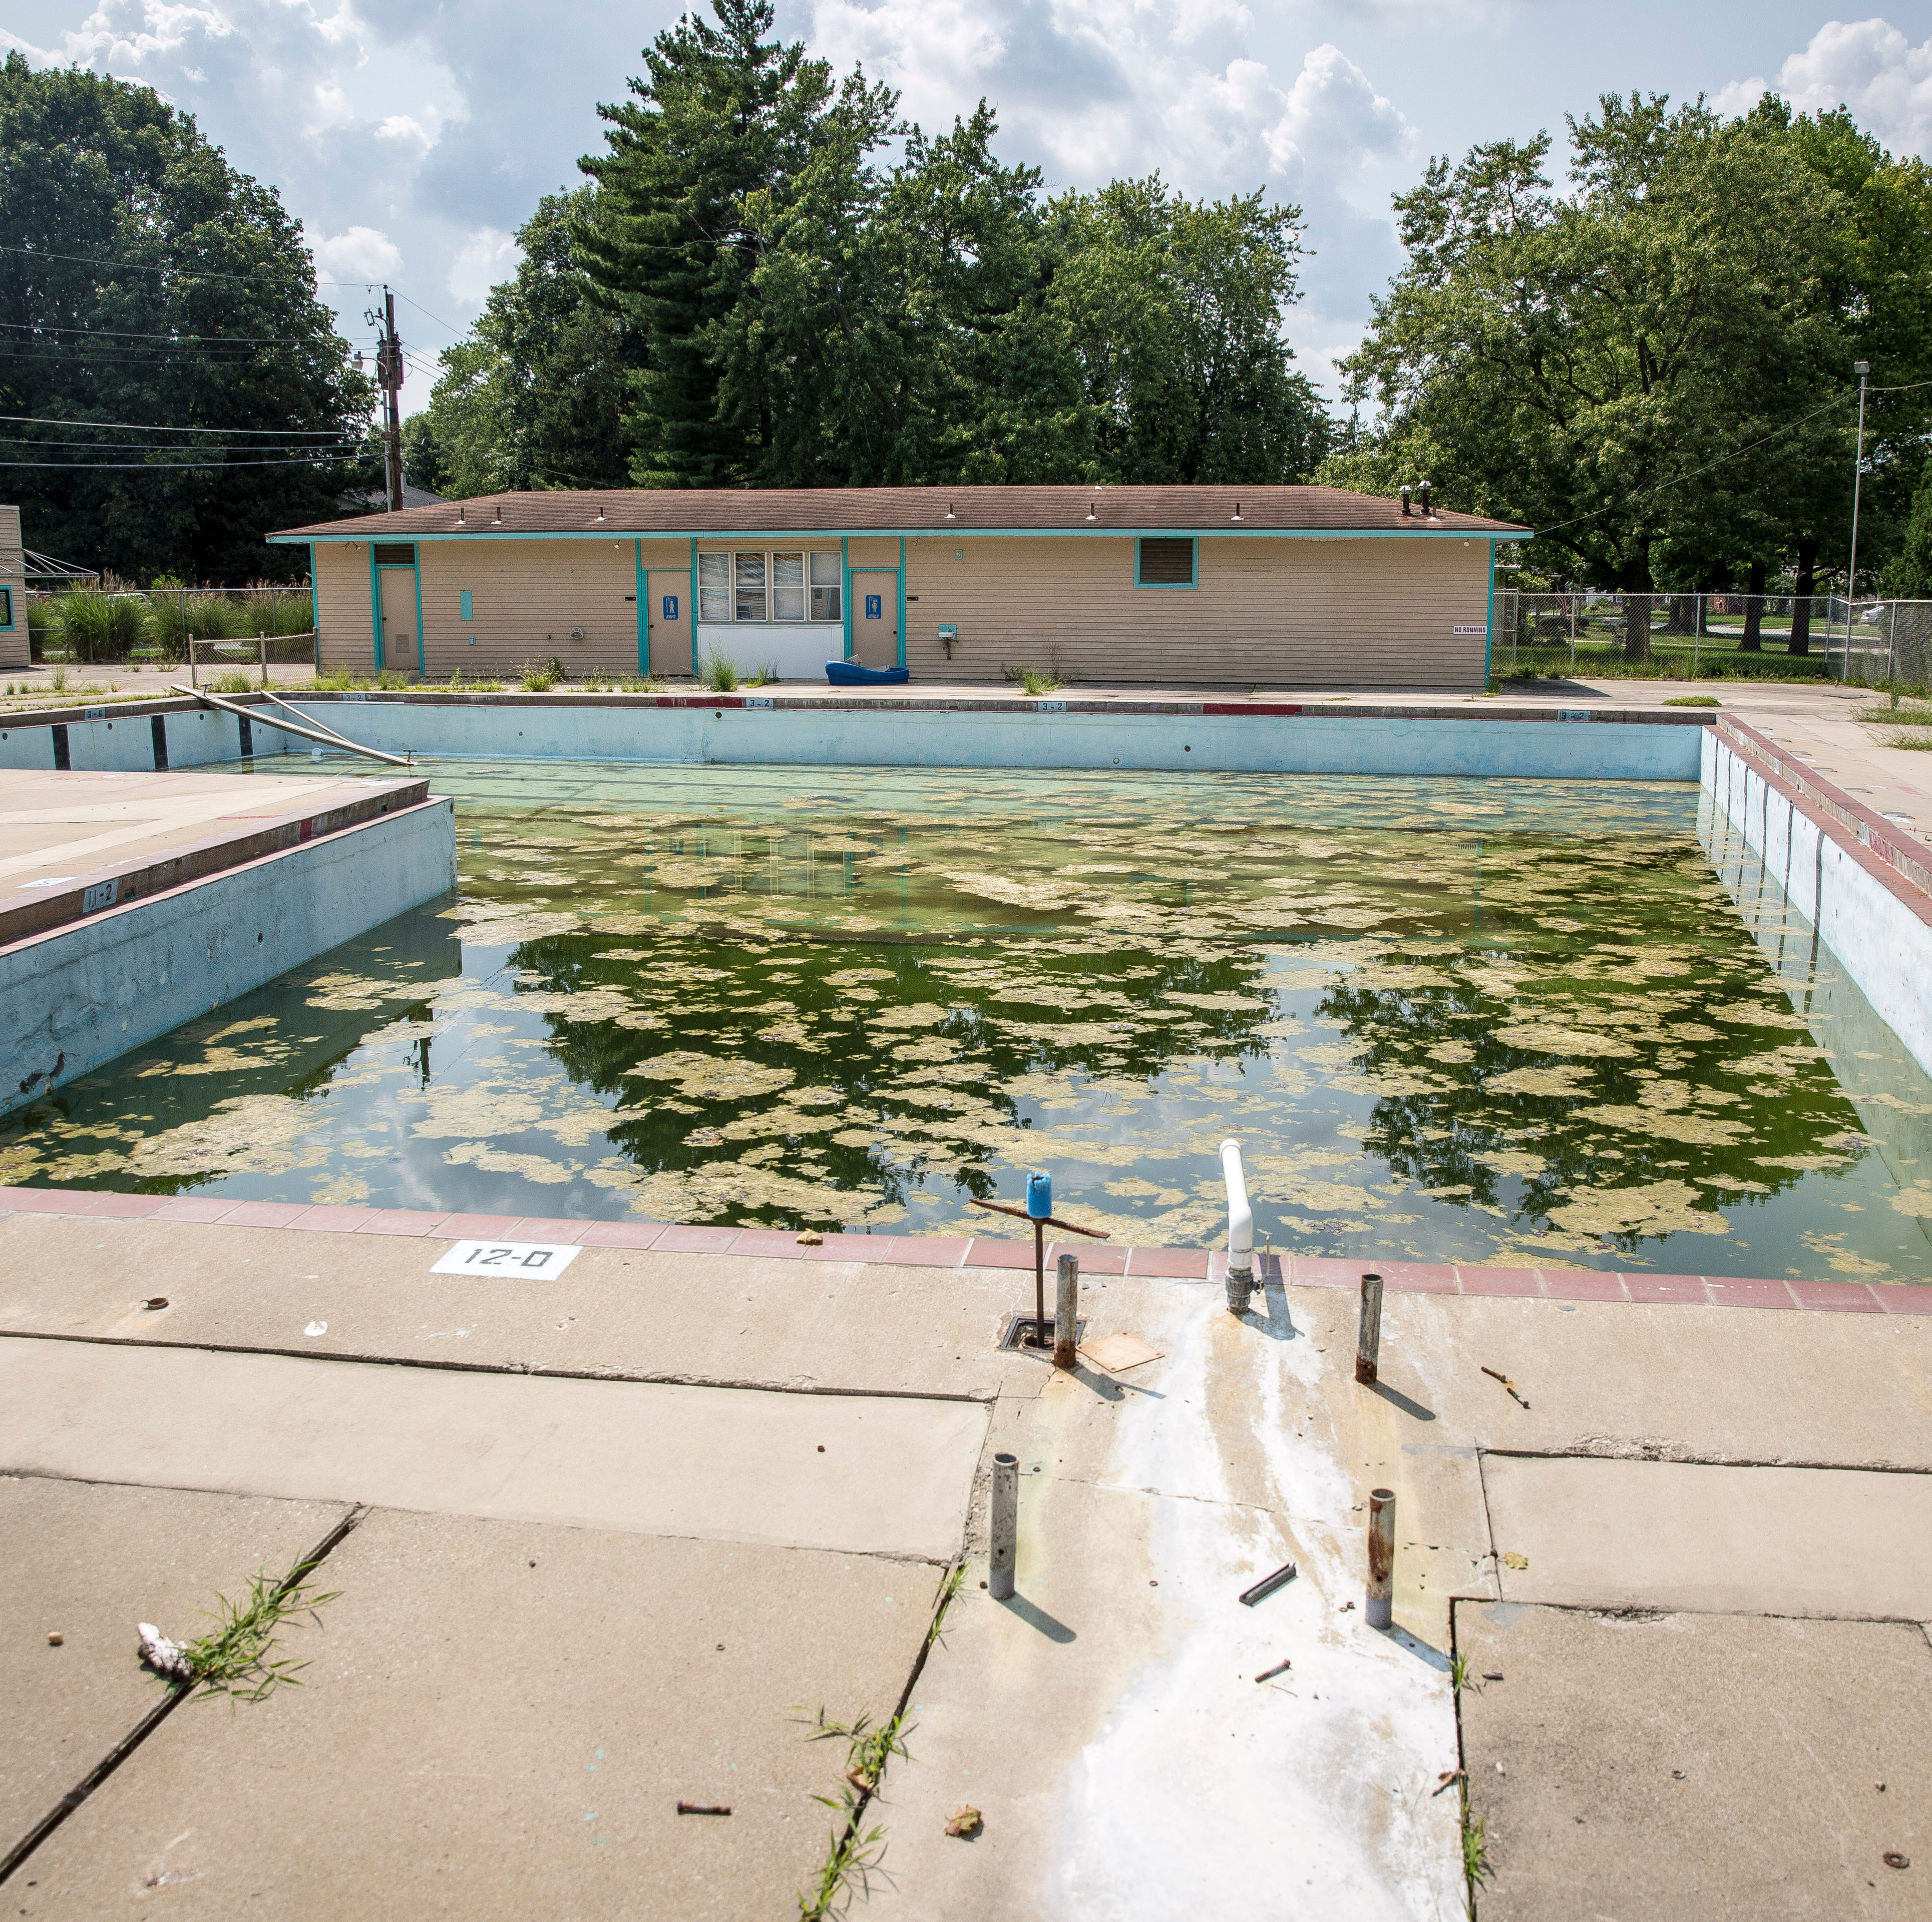 City of Muncie agrees to pay back taxes on former neighborhood pool